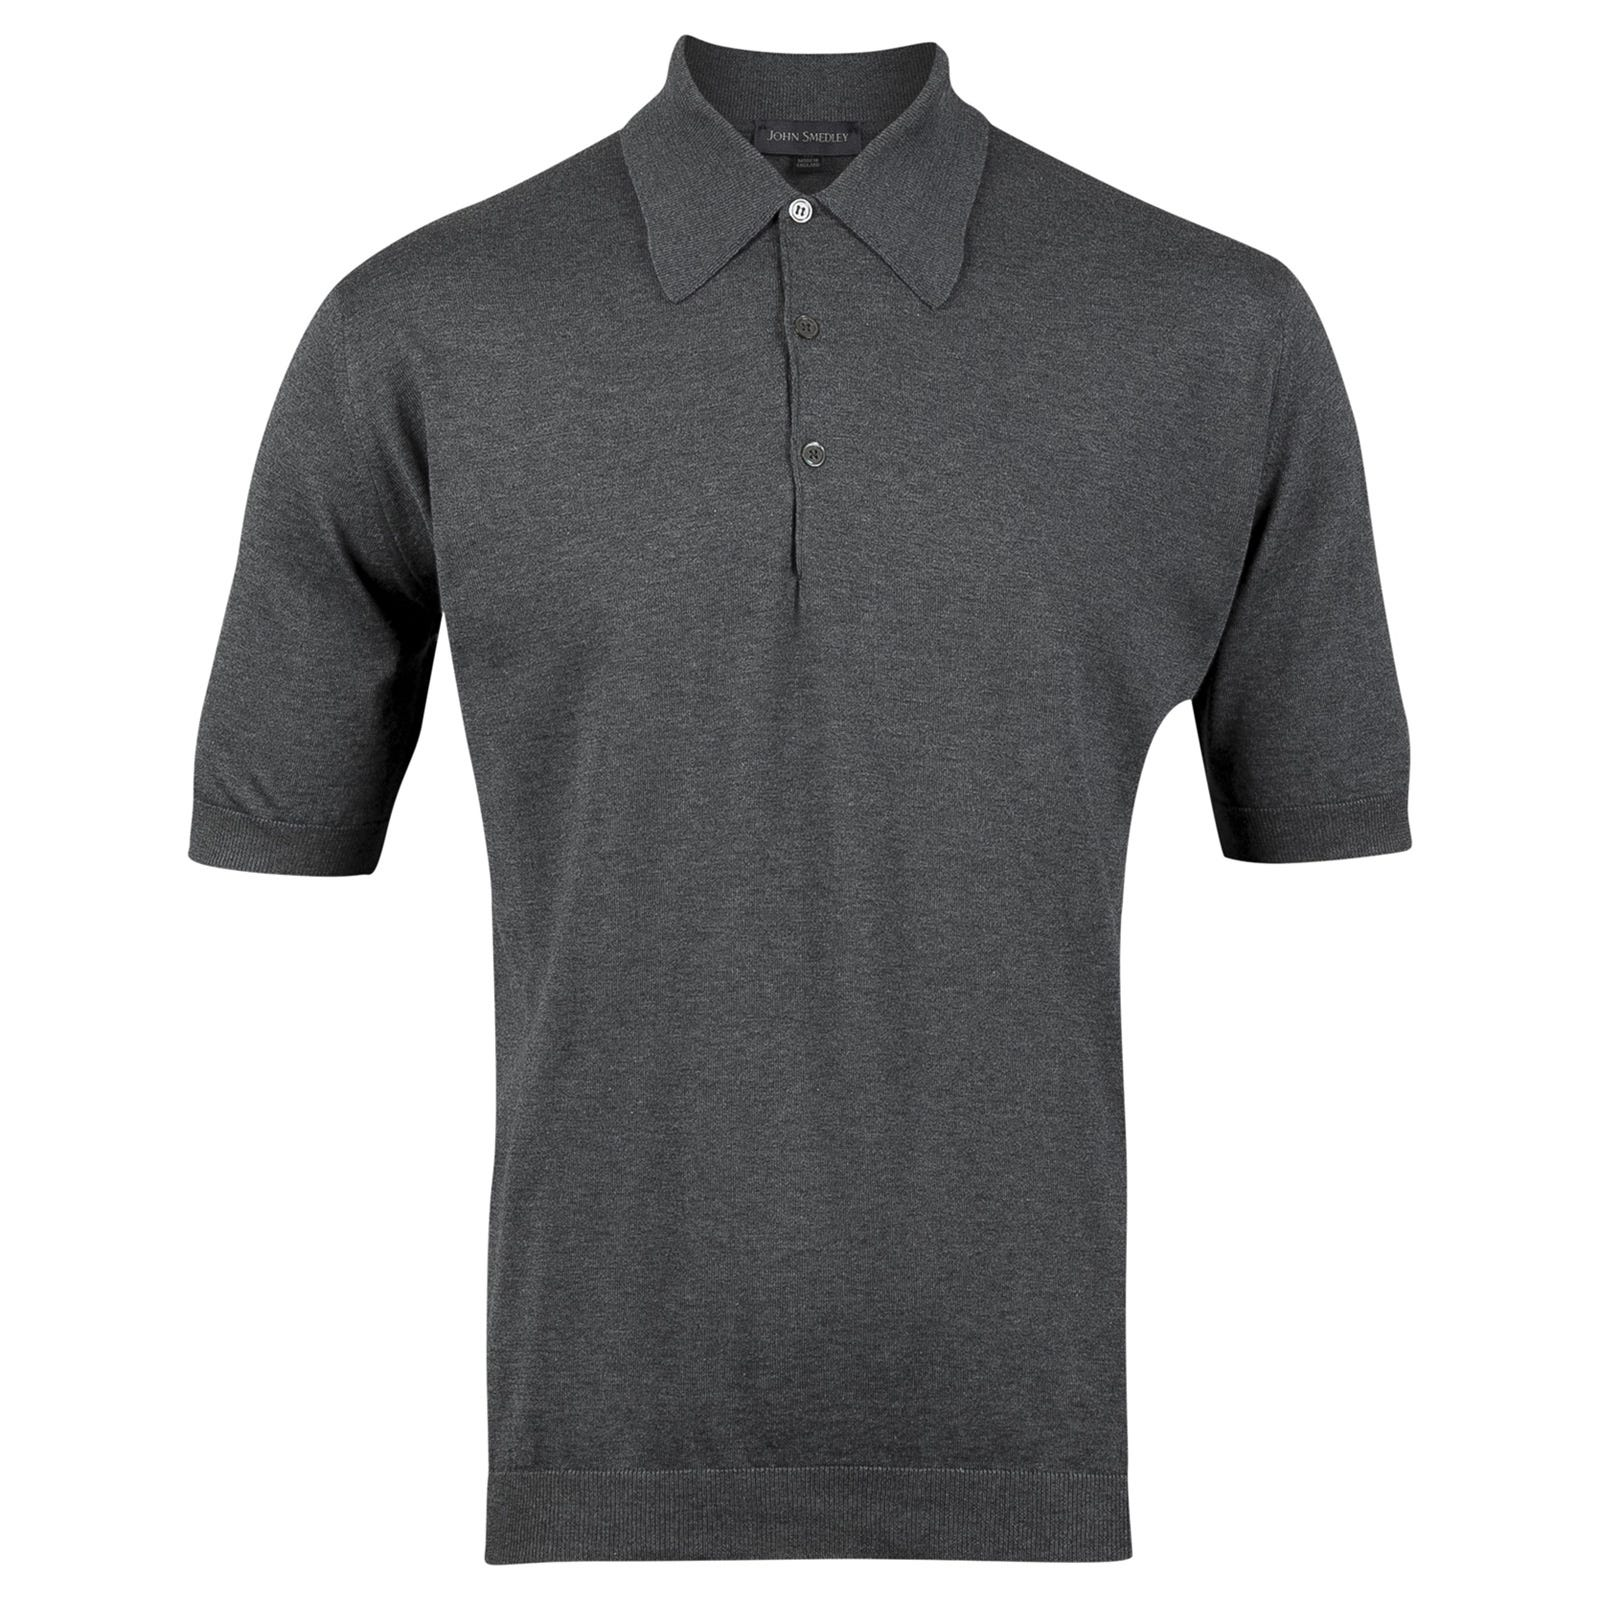 John Smedley Isis Sea Island Cotton Shirt in Charcoal-L